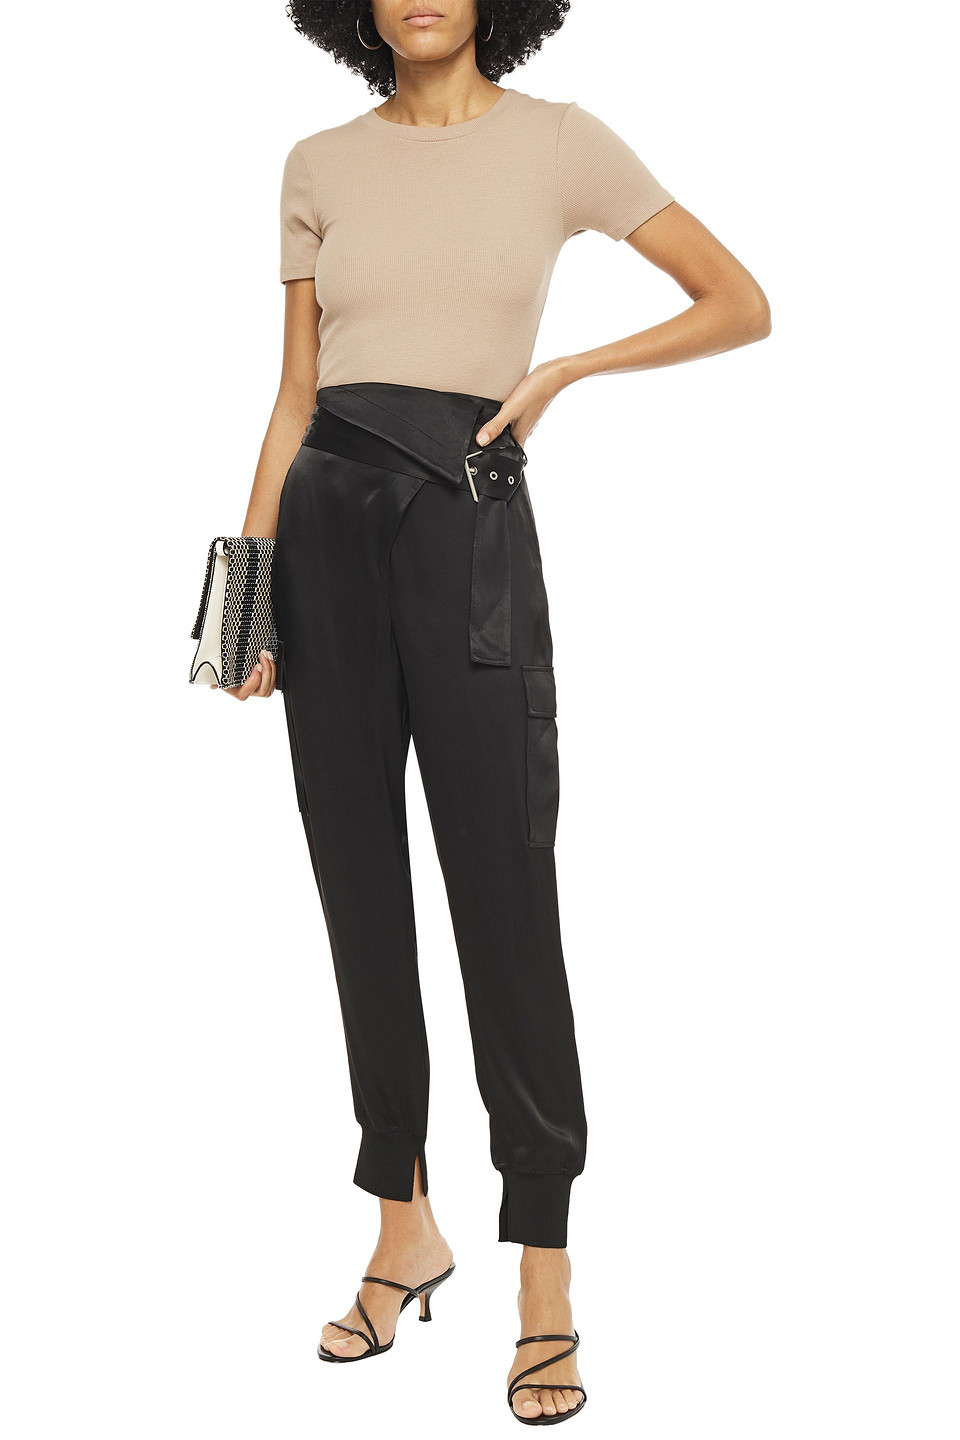 3.1 Phillip Lim   3.1 Phillip Lim Woman Belted Satin-crepe Tapered Pants Black   Clouty